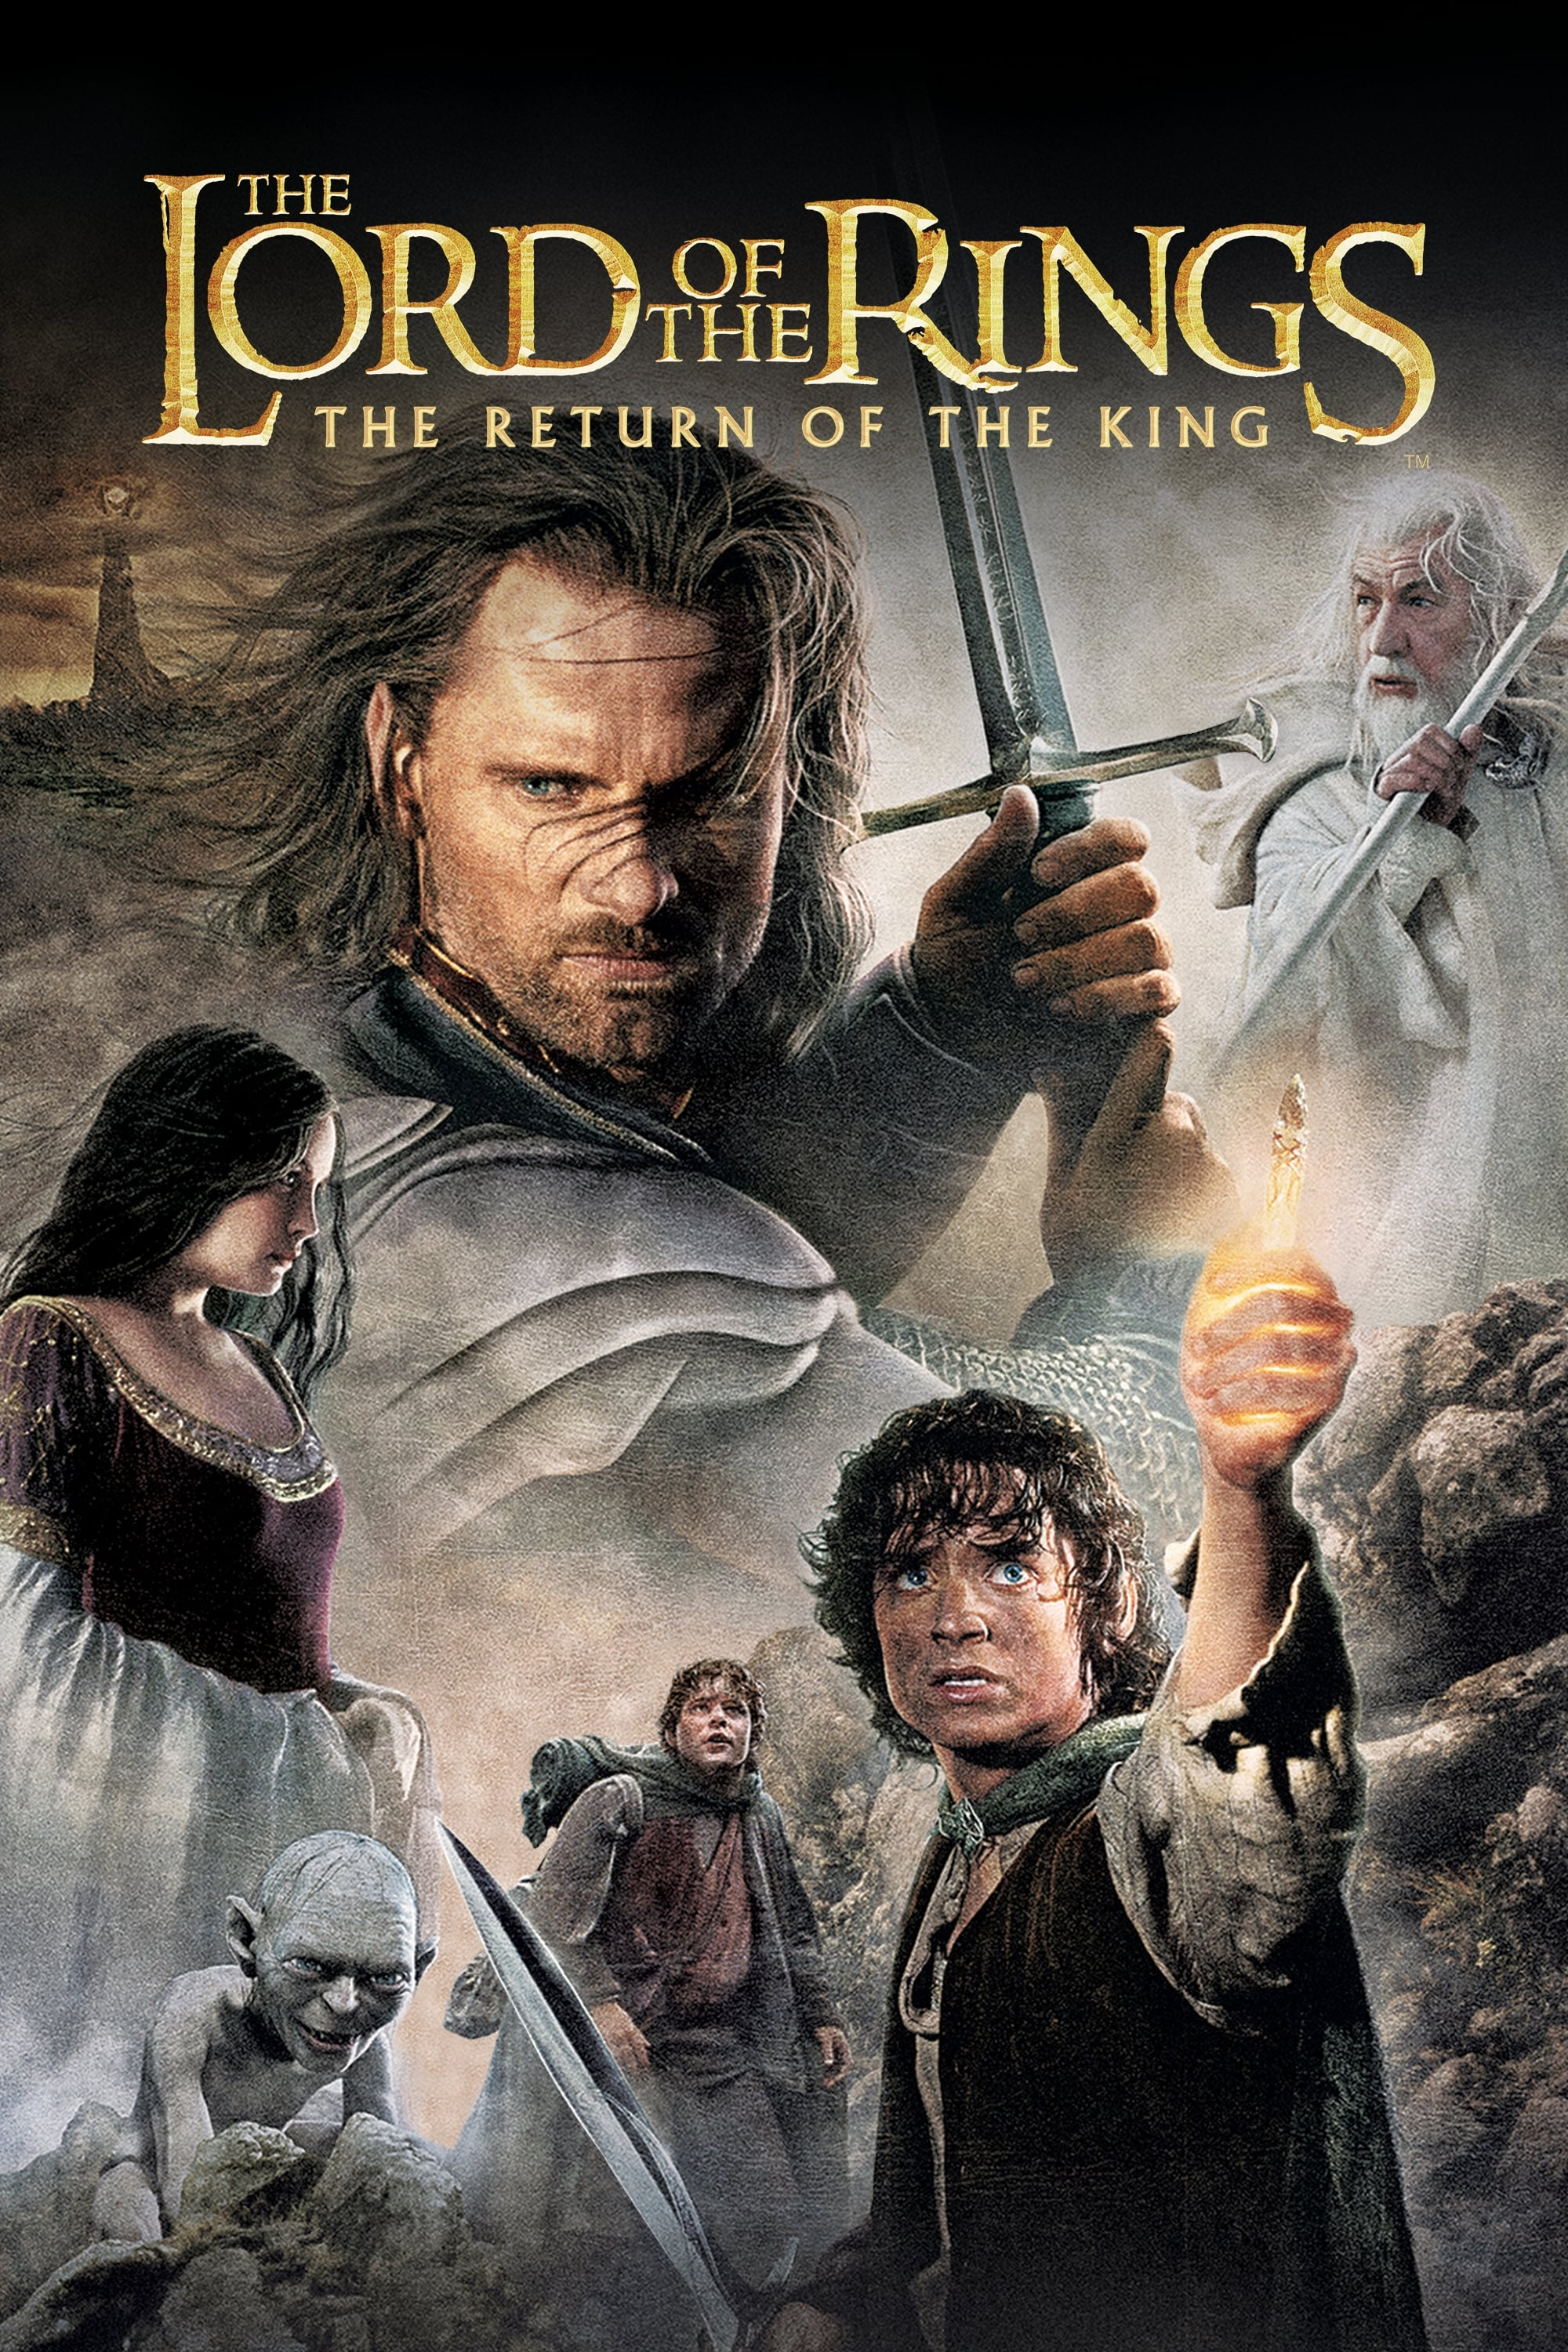 image for The Lord of the Rings: The Return of the King